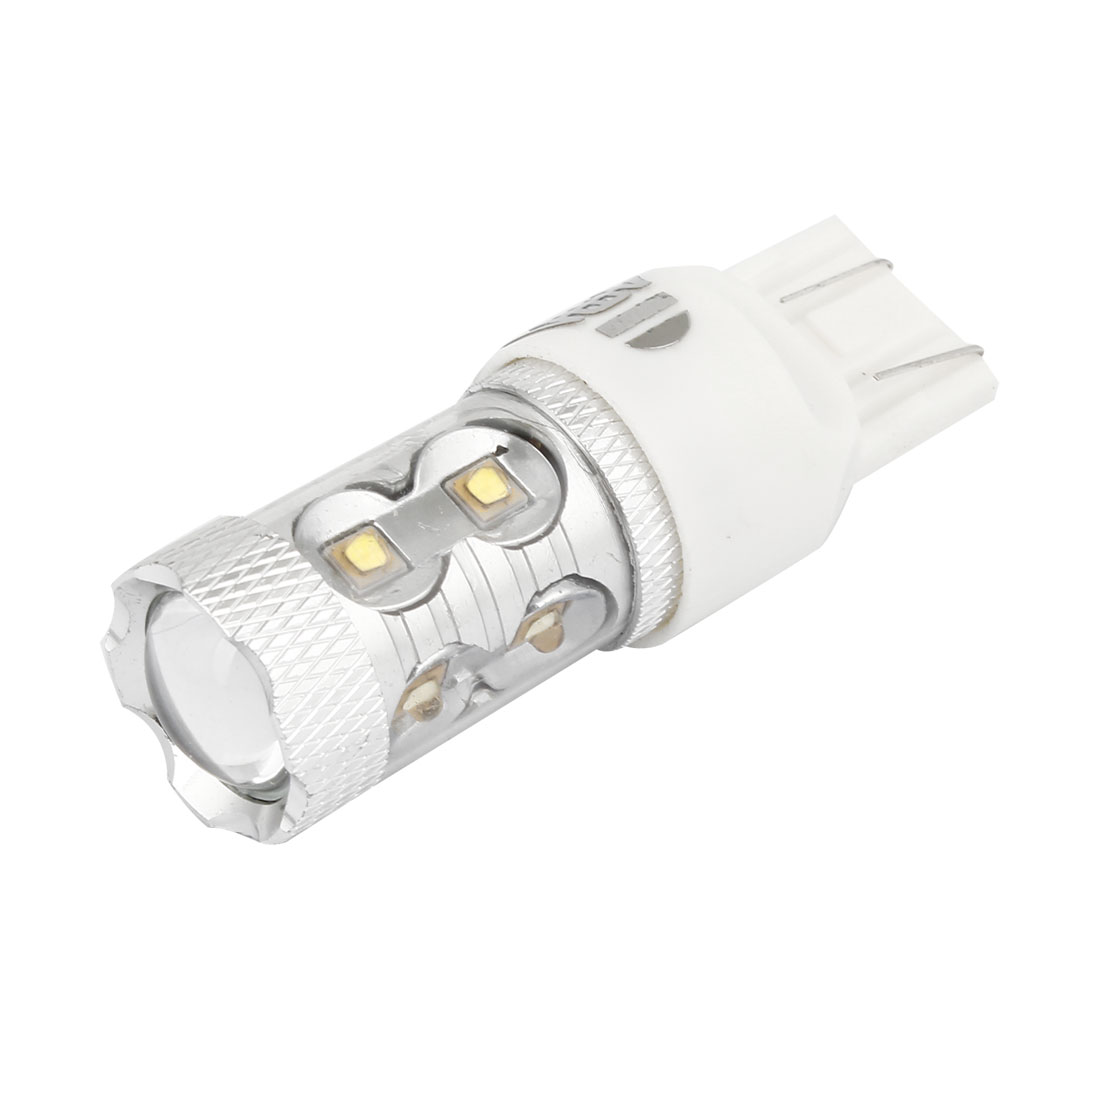 White T20 7443 10 SMD LED Strob Flash Steady Bright Backup Light Tail Turning Lamp Bulb 50W 12V